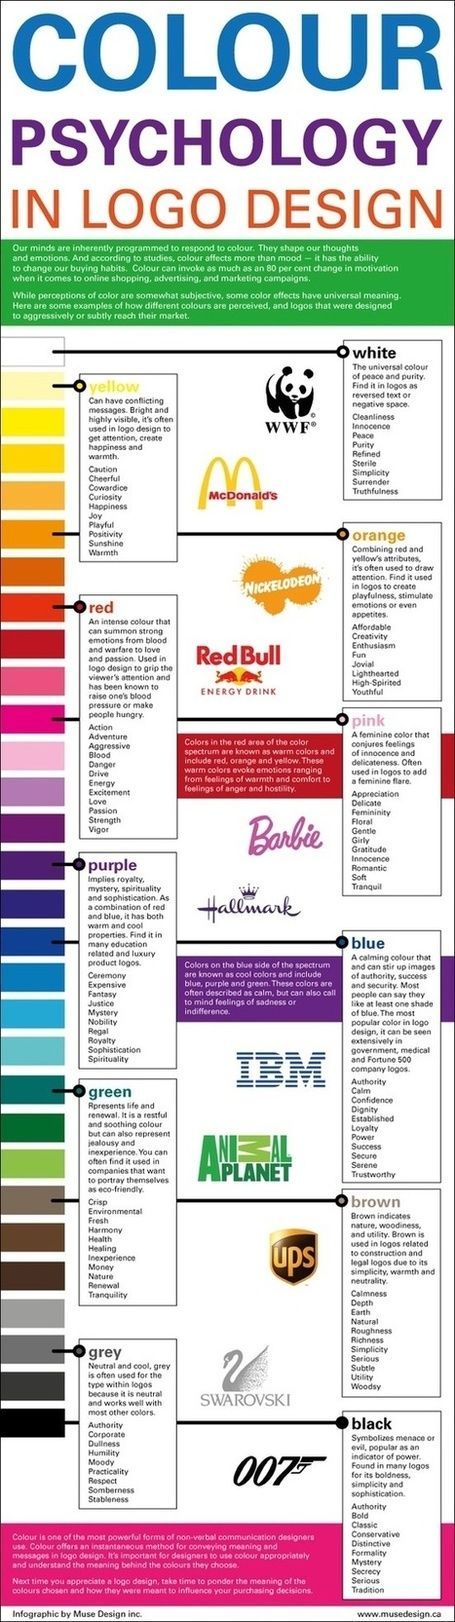 Color Psychology in logo design... this is cool we learned about this in my visual design class!